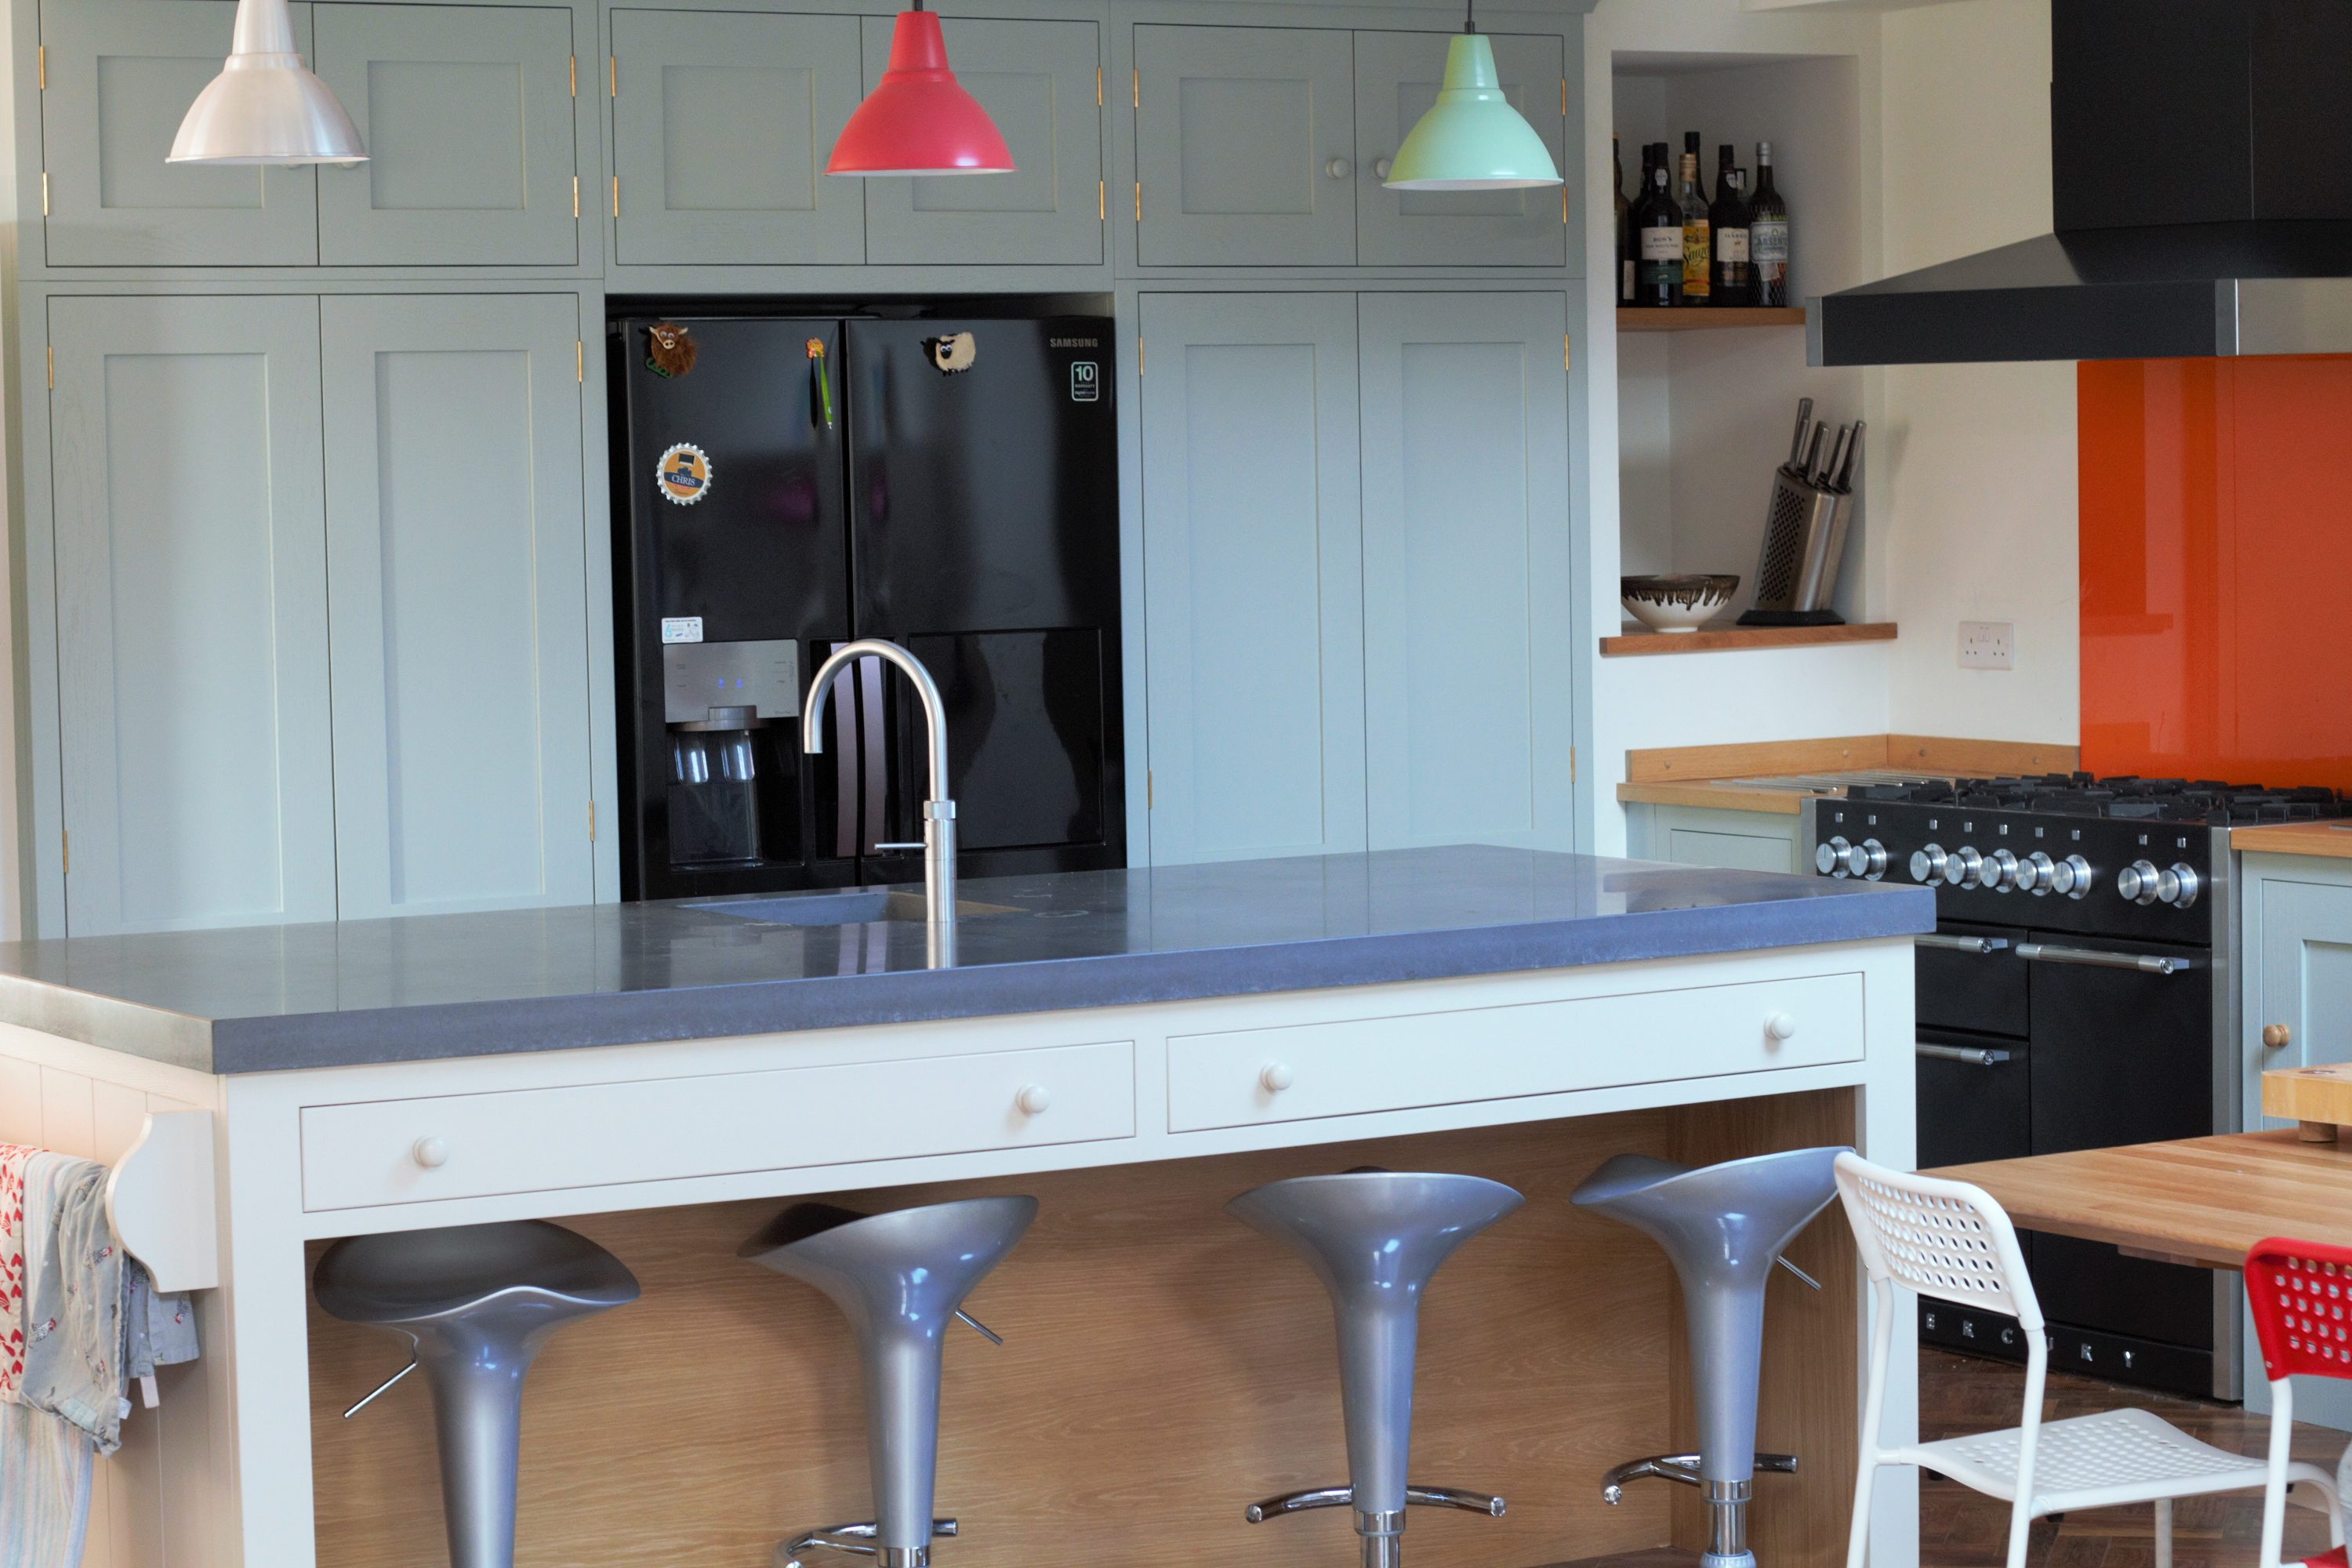 Sustainable Kitchens - Its all about the island - Sustainable Kitchens